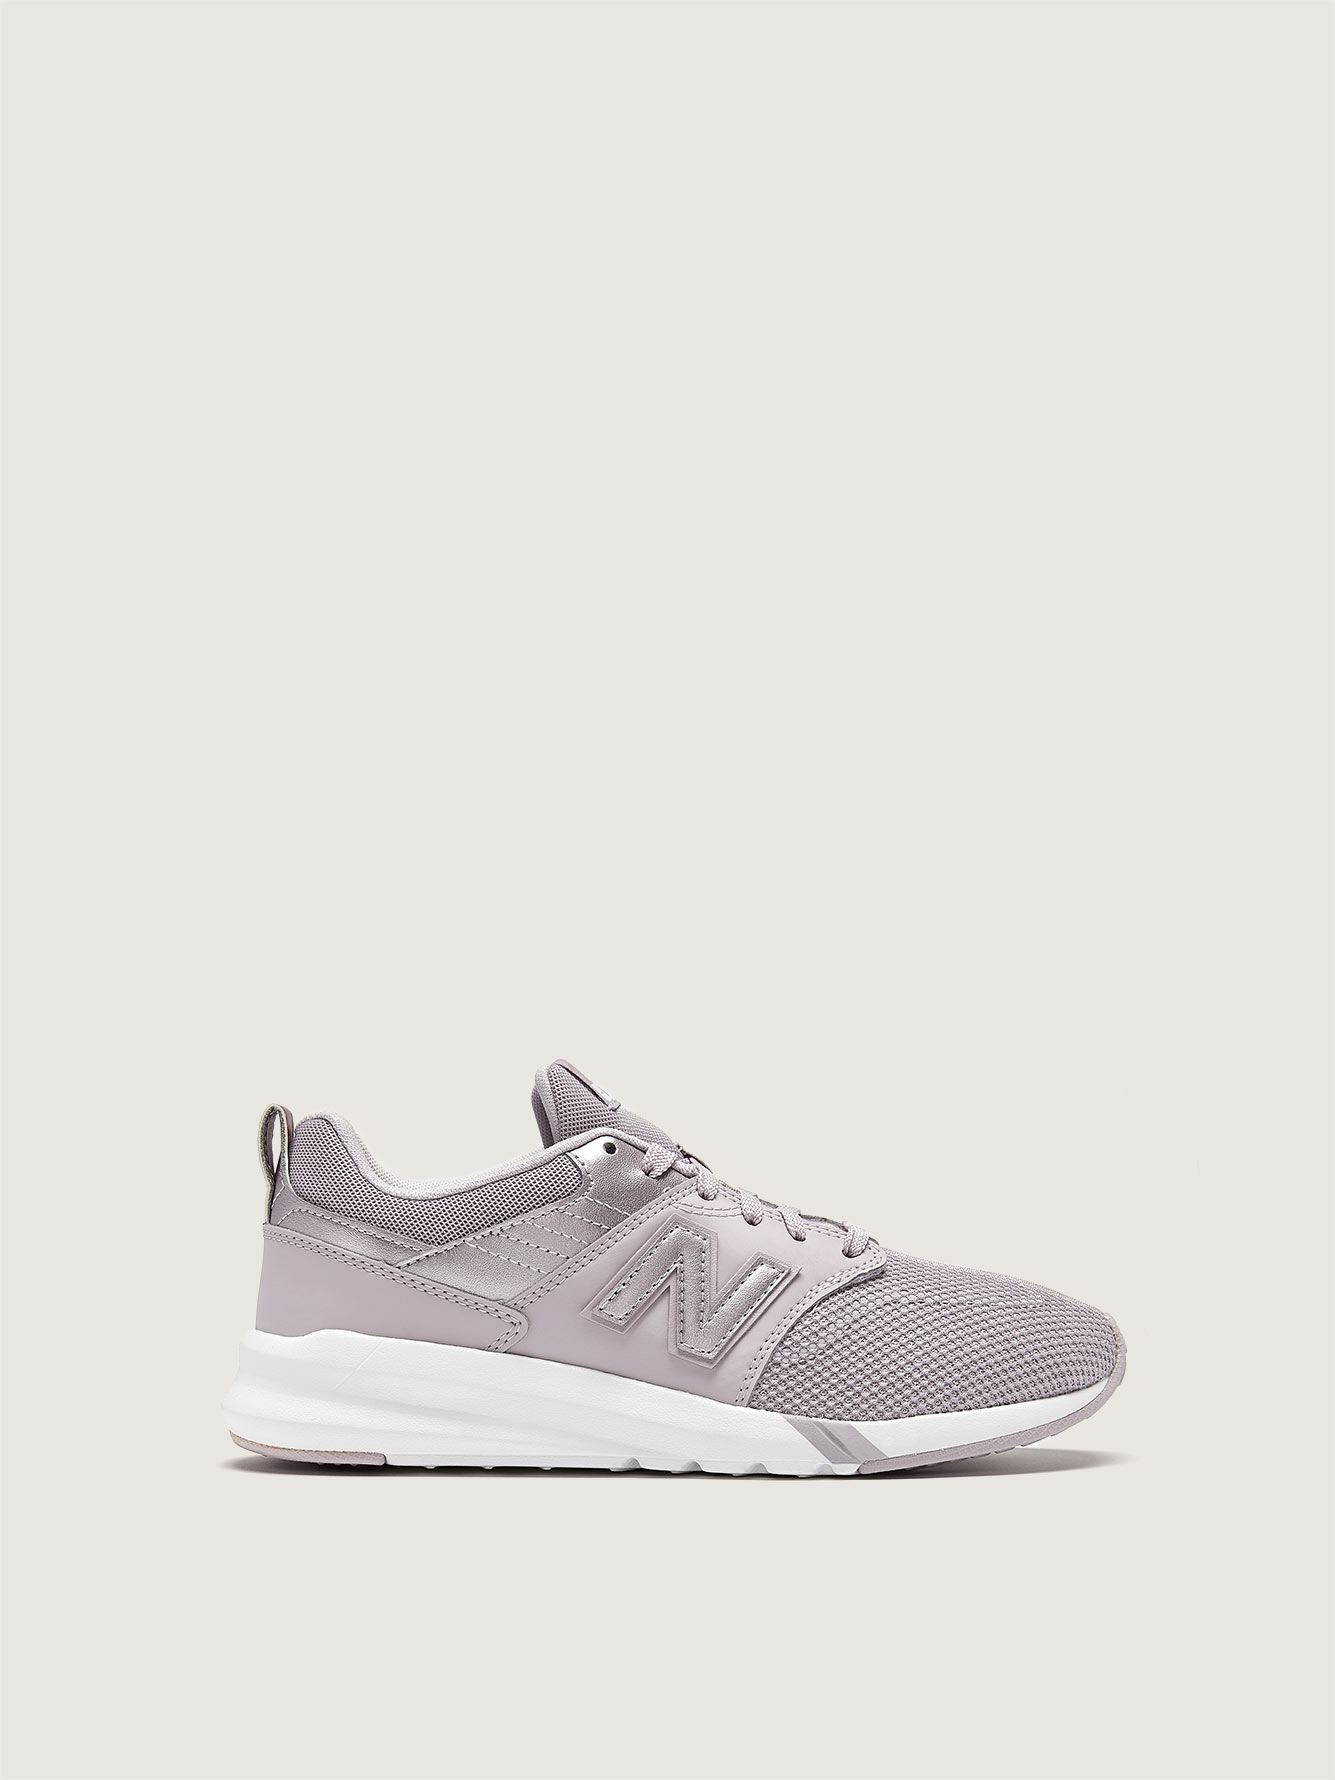 Wide Width Classic Retro Sneakers - New Balance